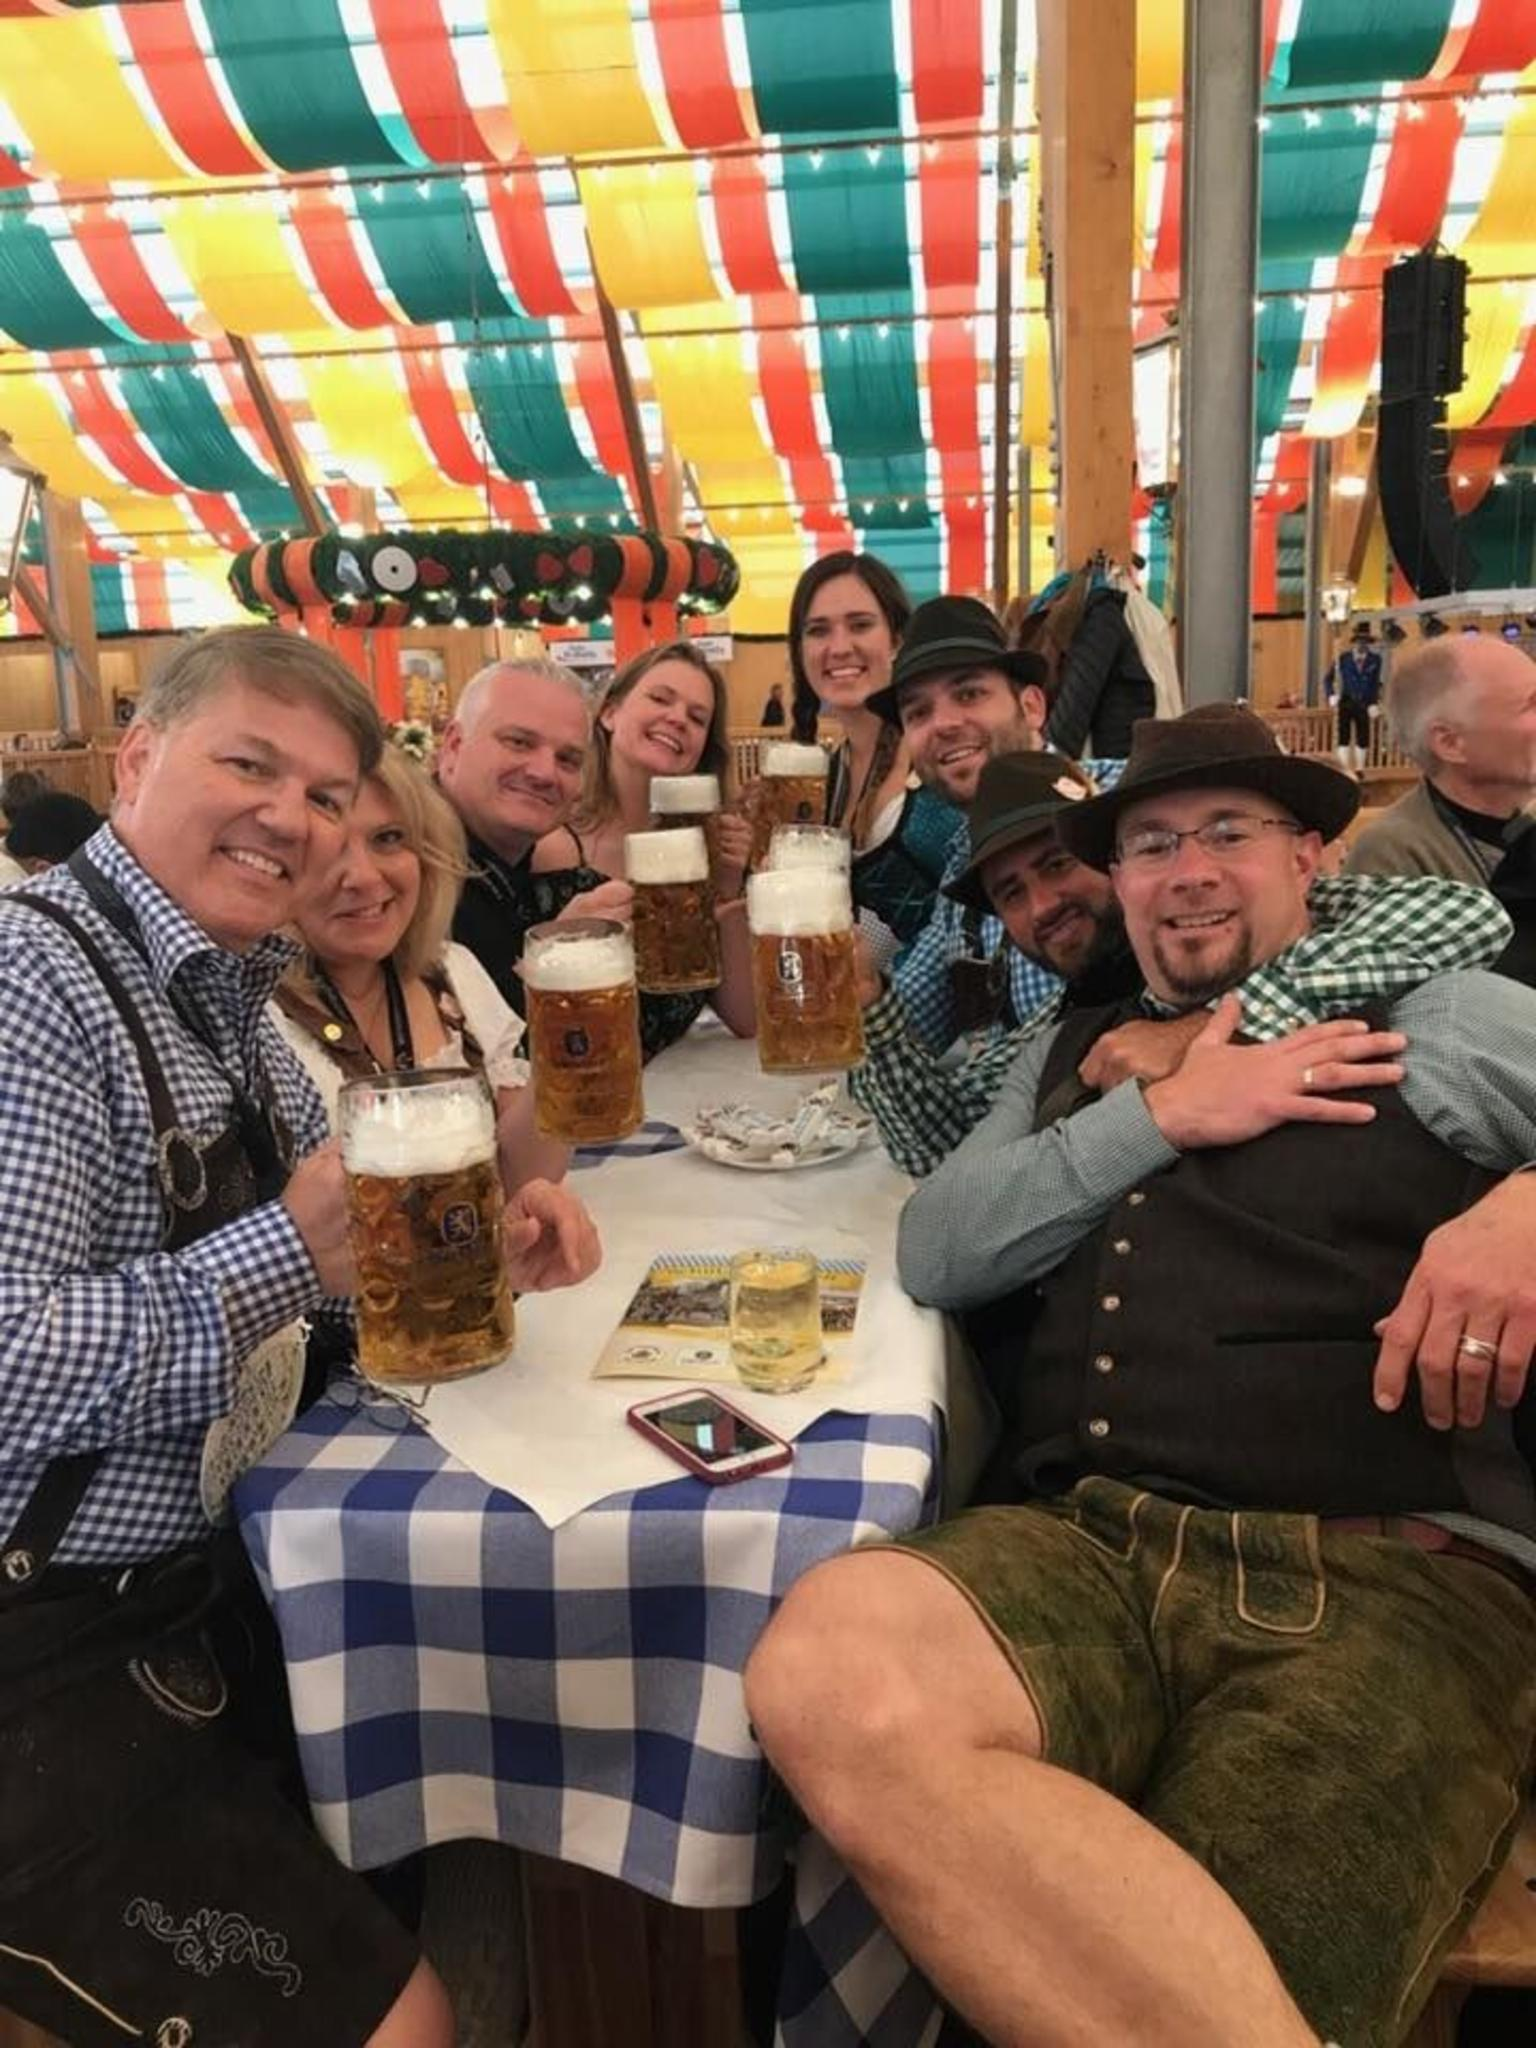 MAIS FOTOS, Munich Oktoberfest Tour and Table Reservation in Tent with Unlimited Beer